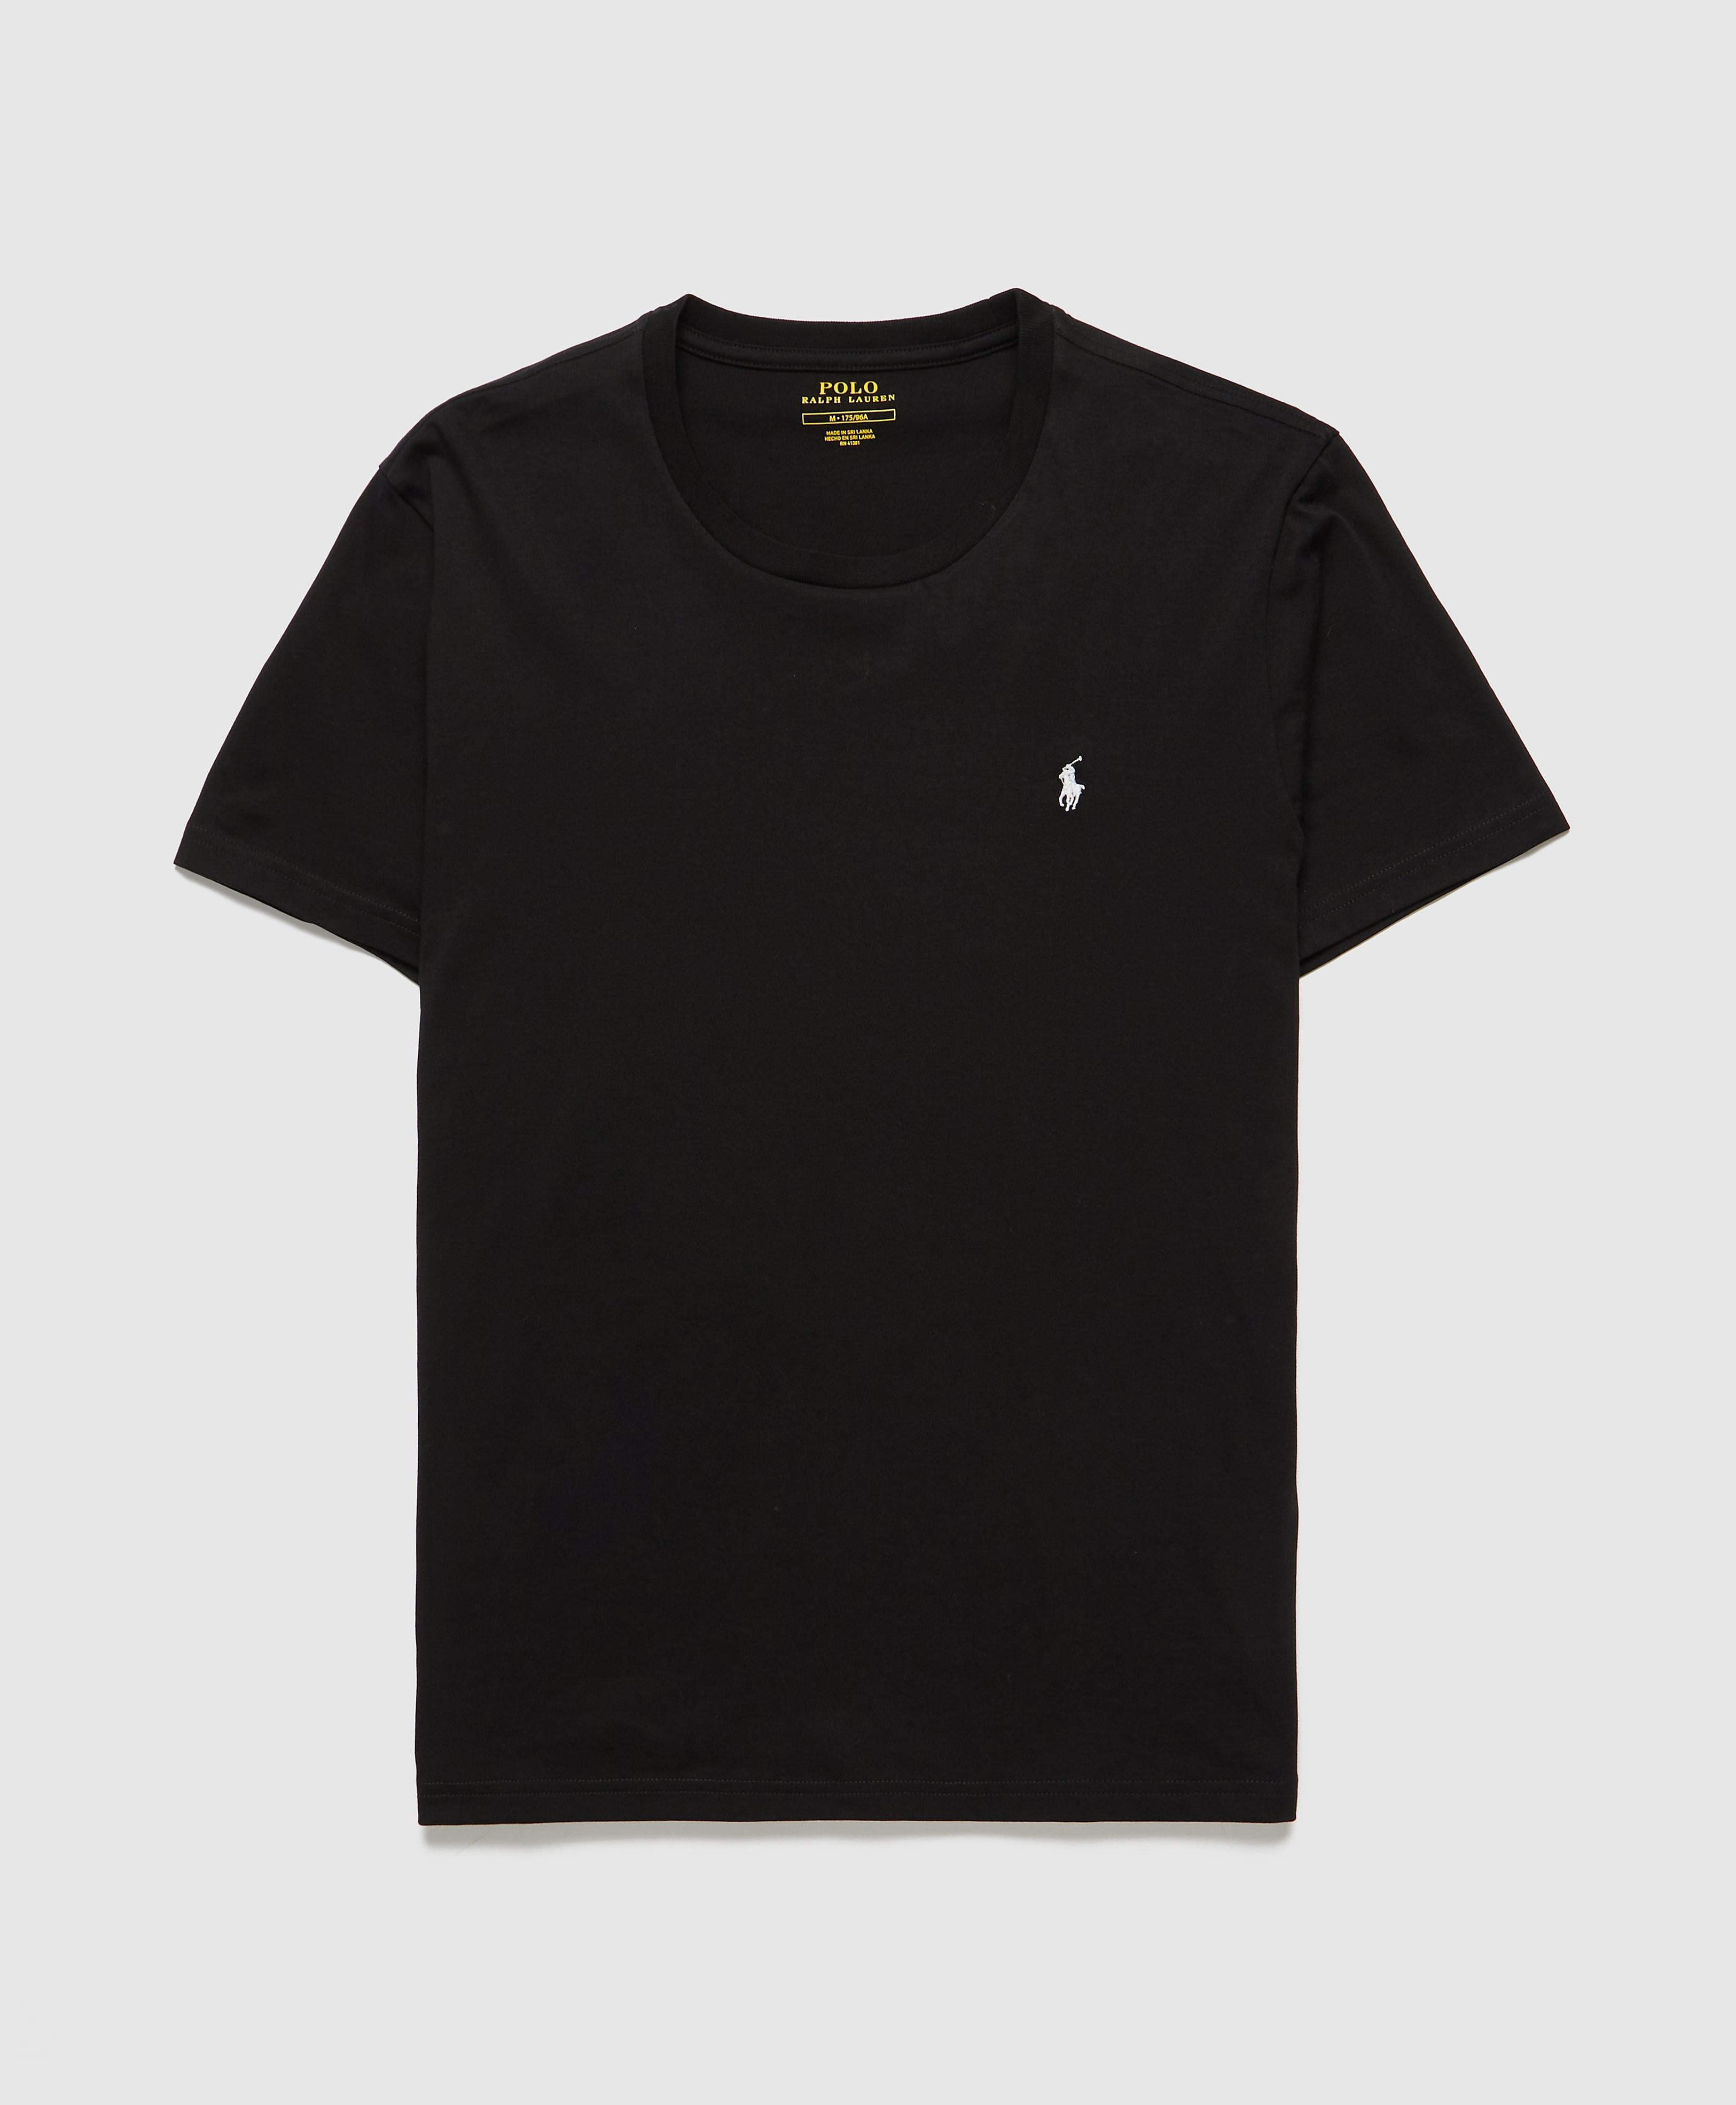 Polo Ralph Lauren Basic Short Sleeve T-Shirt